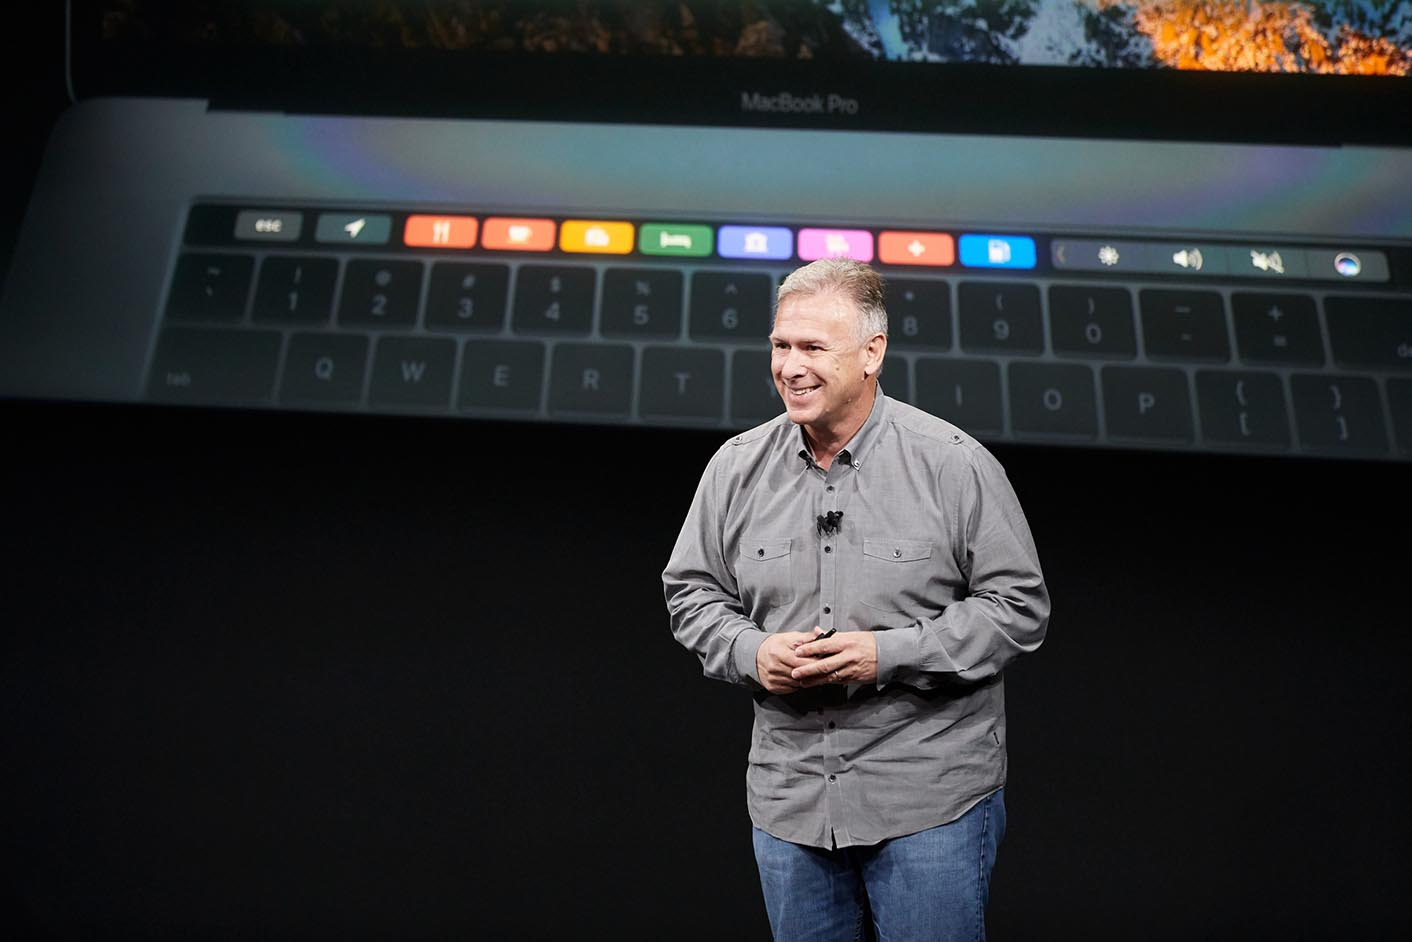 IMac : Tim Cook promet de grandes choses